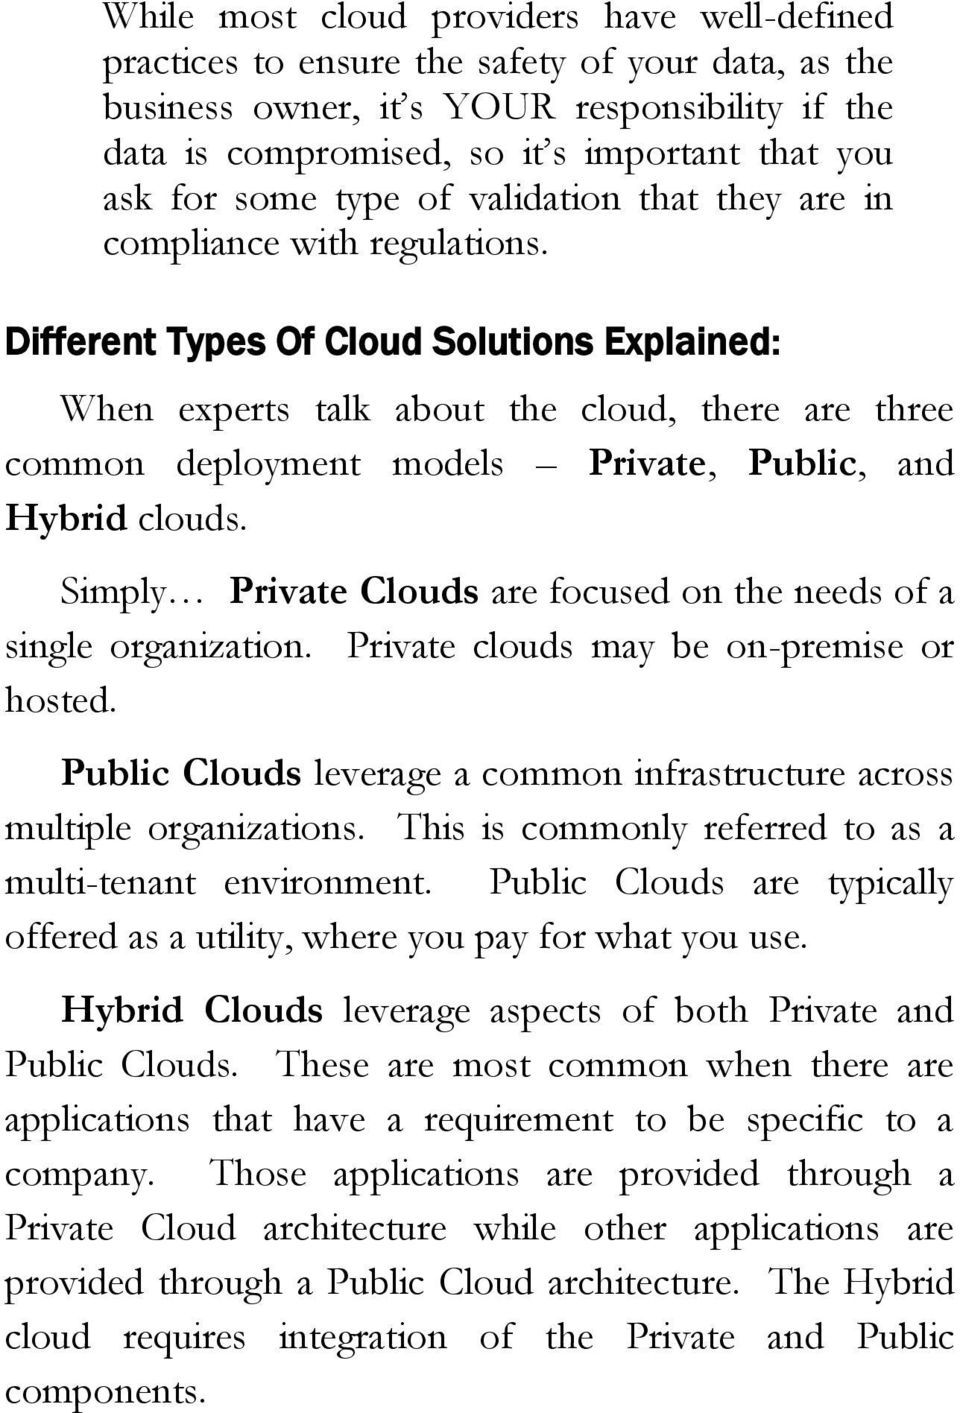 Different Types Of Cloud Solutions Explained: When experts talk about the cloud, there are three common deployment models Private, Public, and Hybrid clouds.